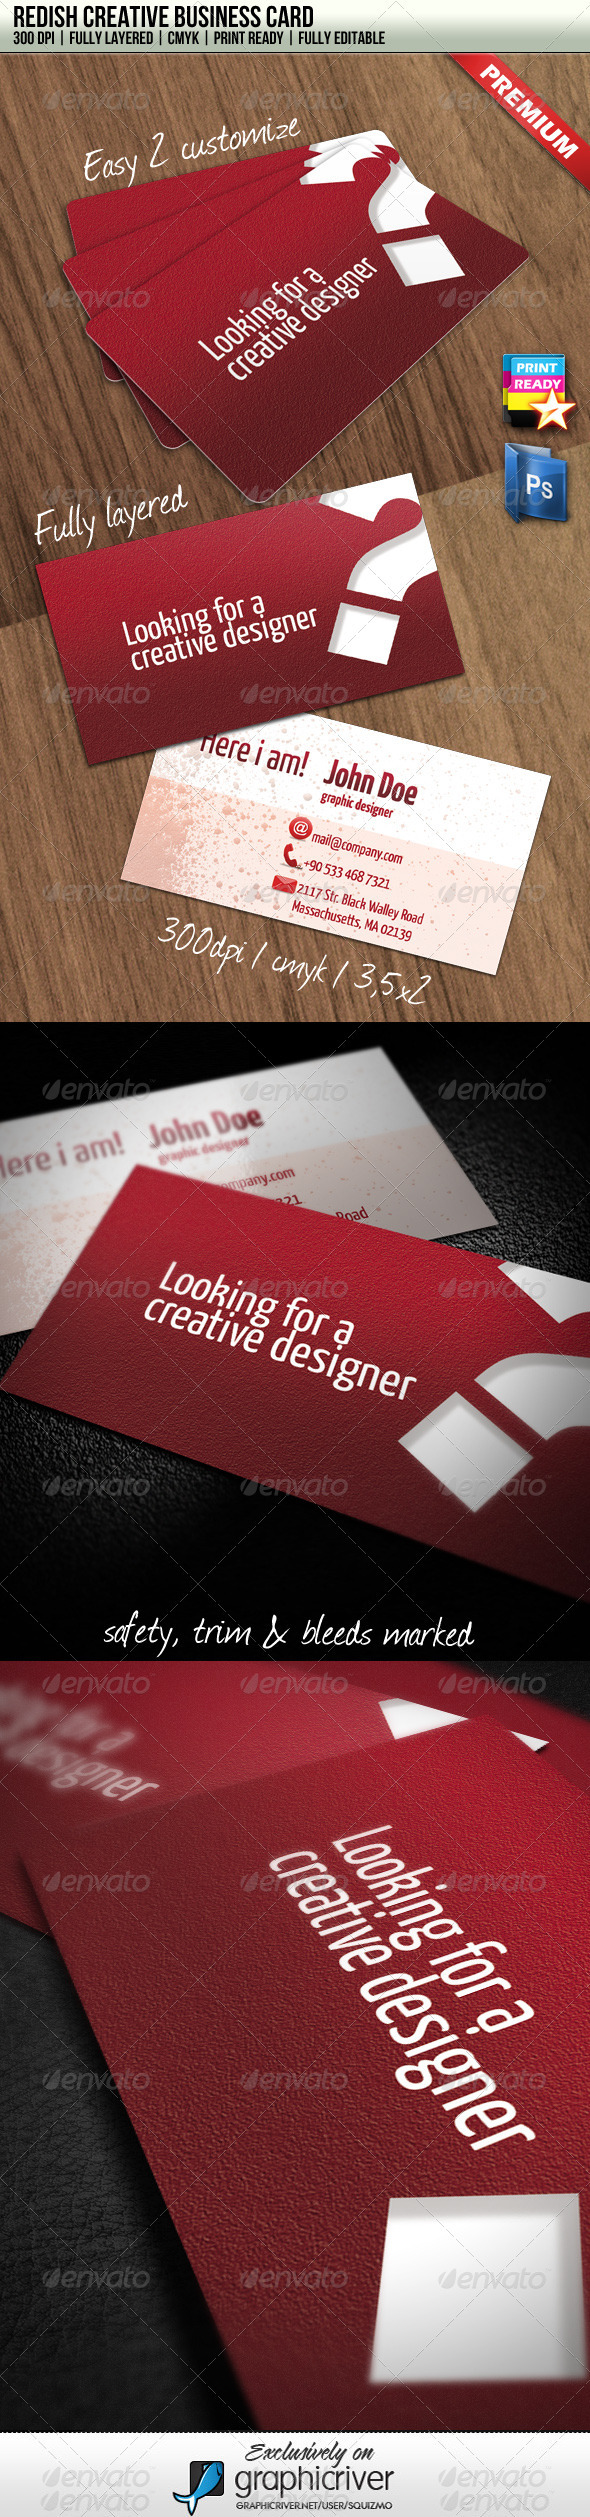 Redish Creative Business Card - Creative Business Cards